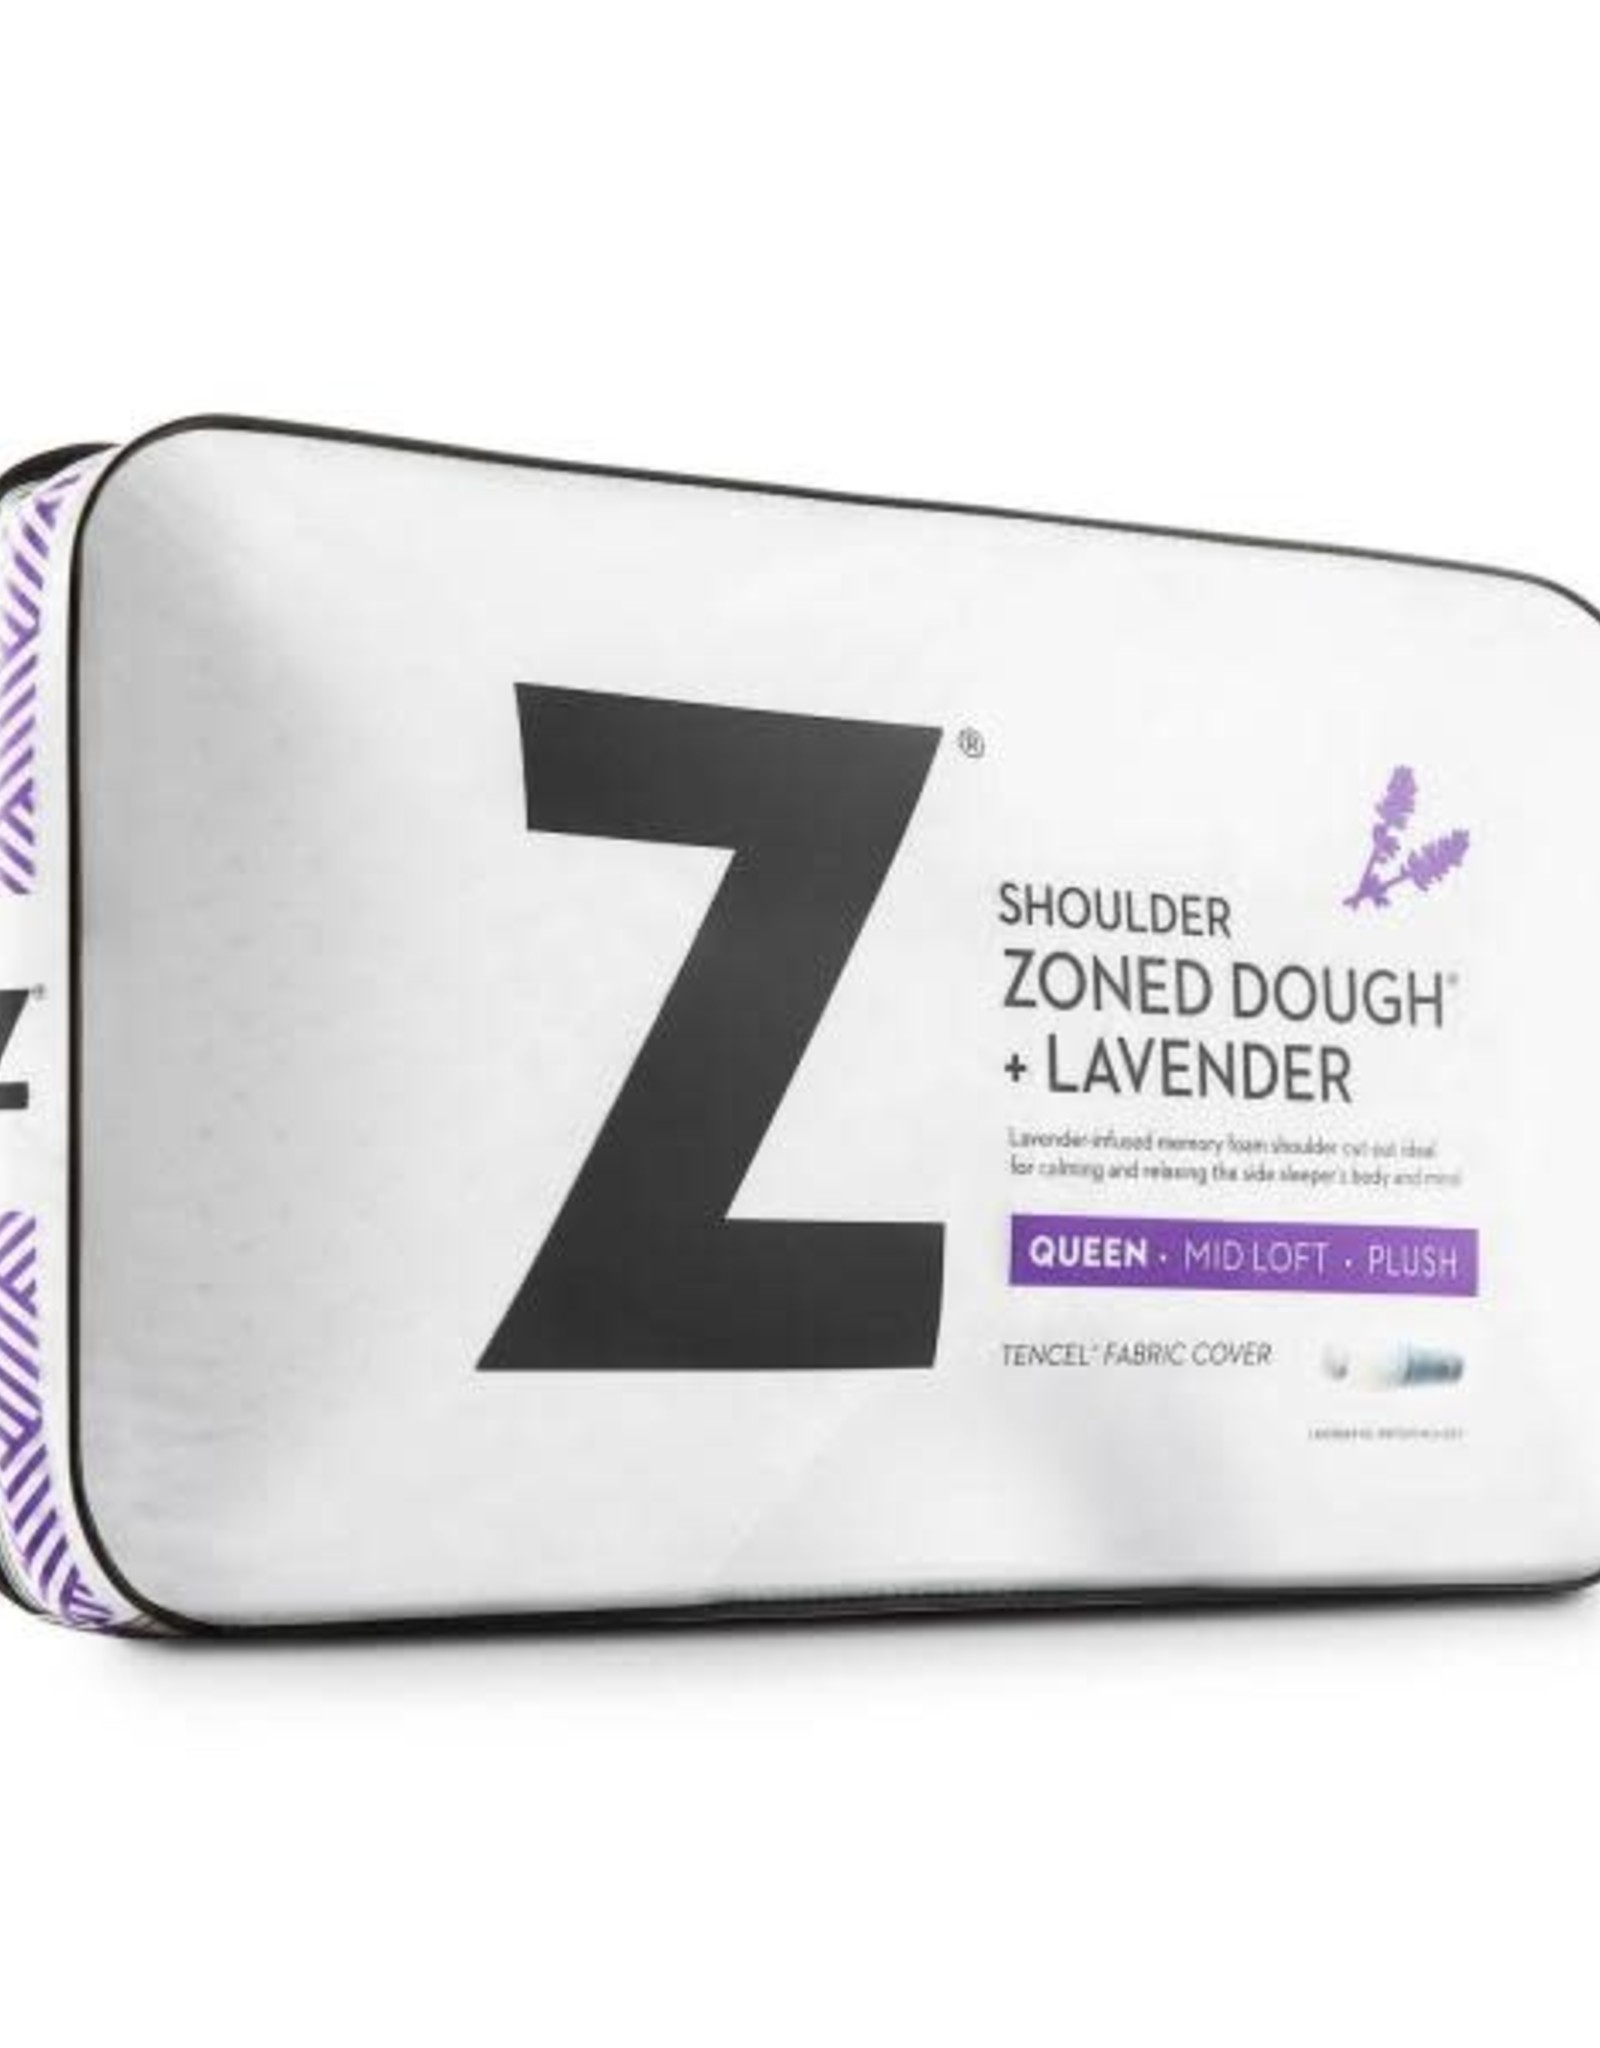 Malouf Z Shoulder Cutout Zoned Dough Pillow - Lavender